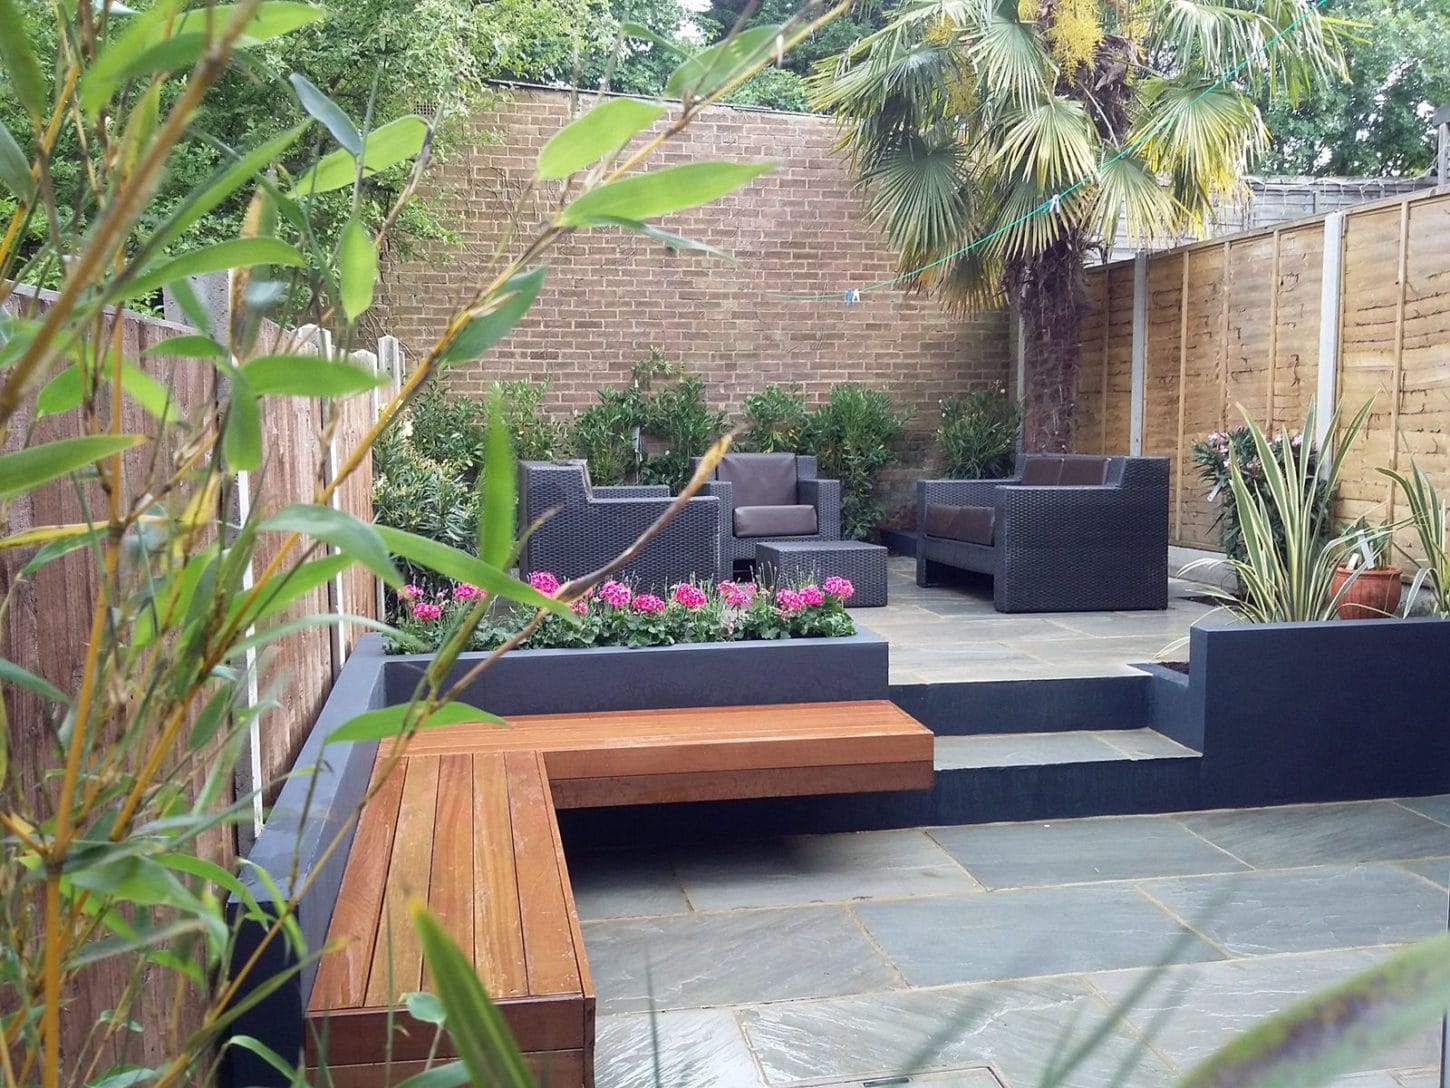 Best modern patio design ideas patio design 38 for 38 garden design ideas